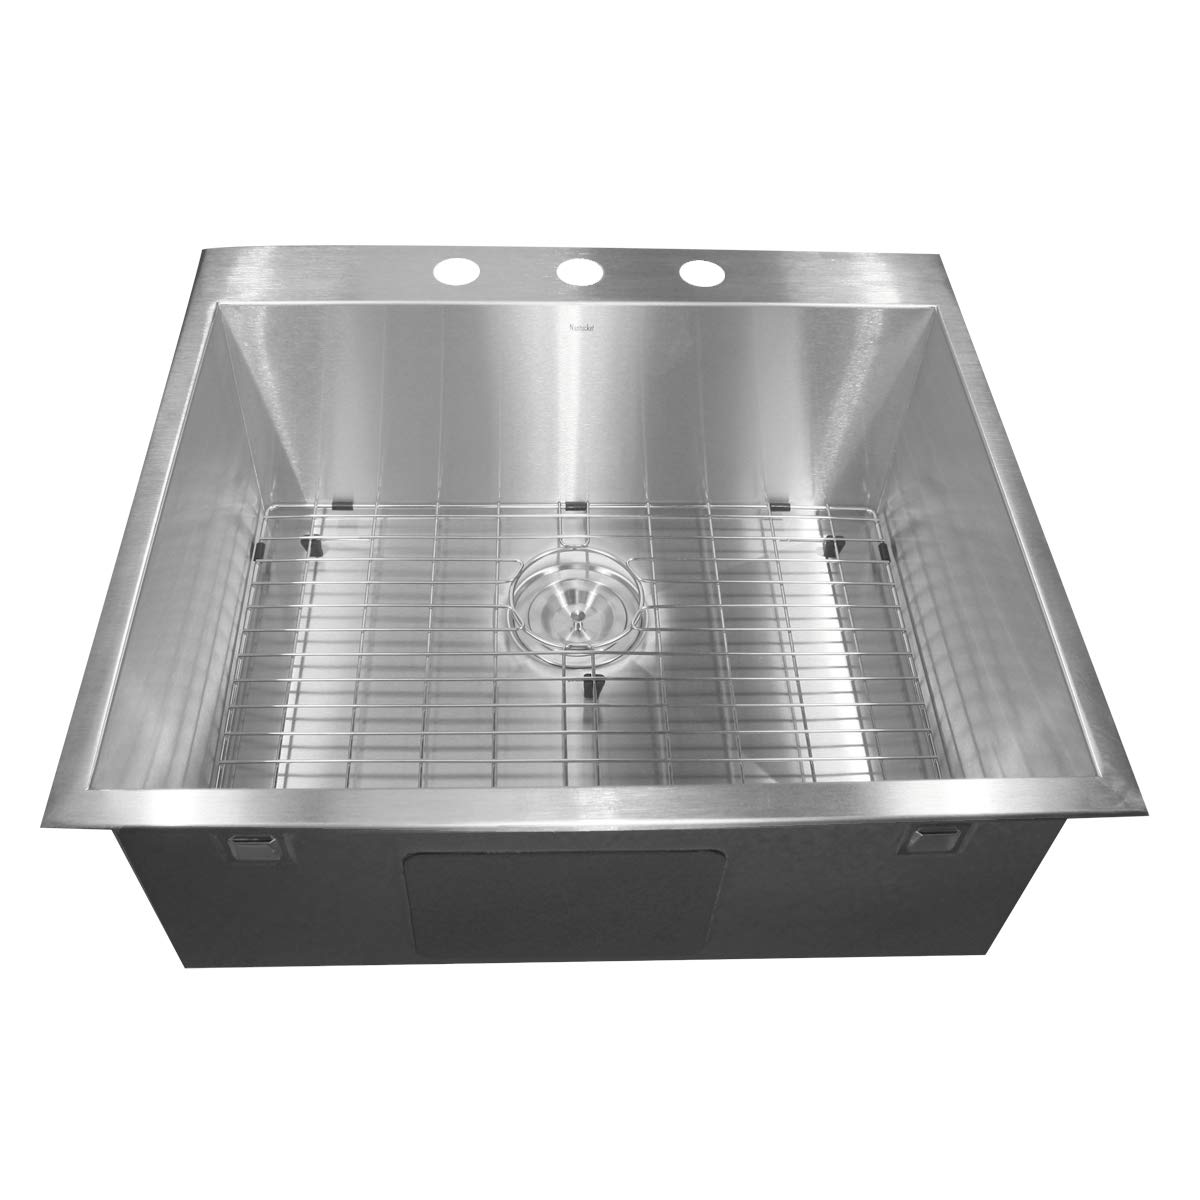 STERLING 11722-NA Cinch 26-7 16-inch by 16-13 16-inch Under-mount Single D-Bowl Kitchen Sink, Stainless Steel